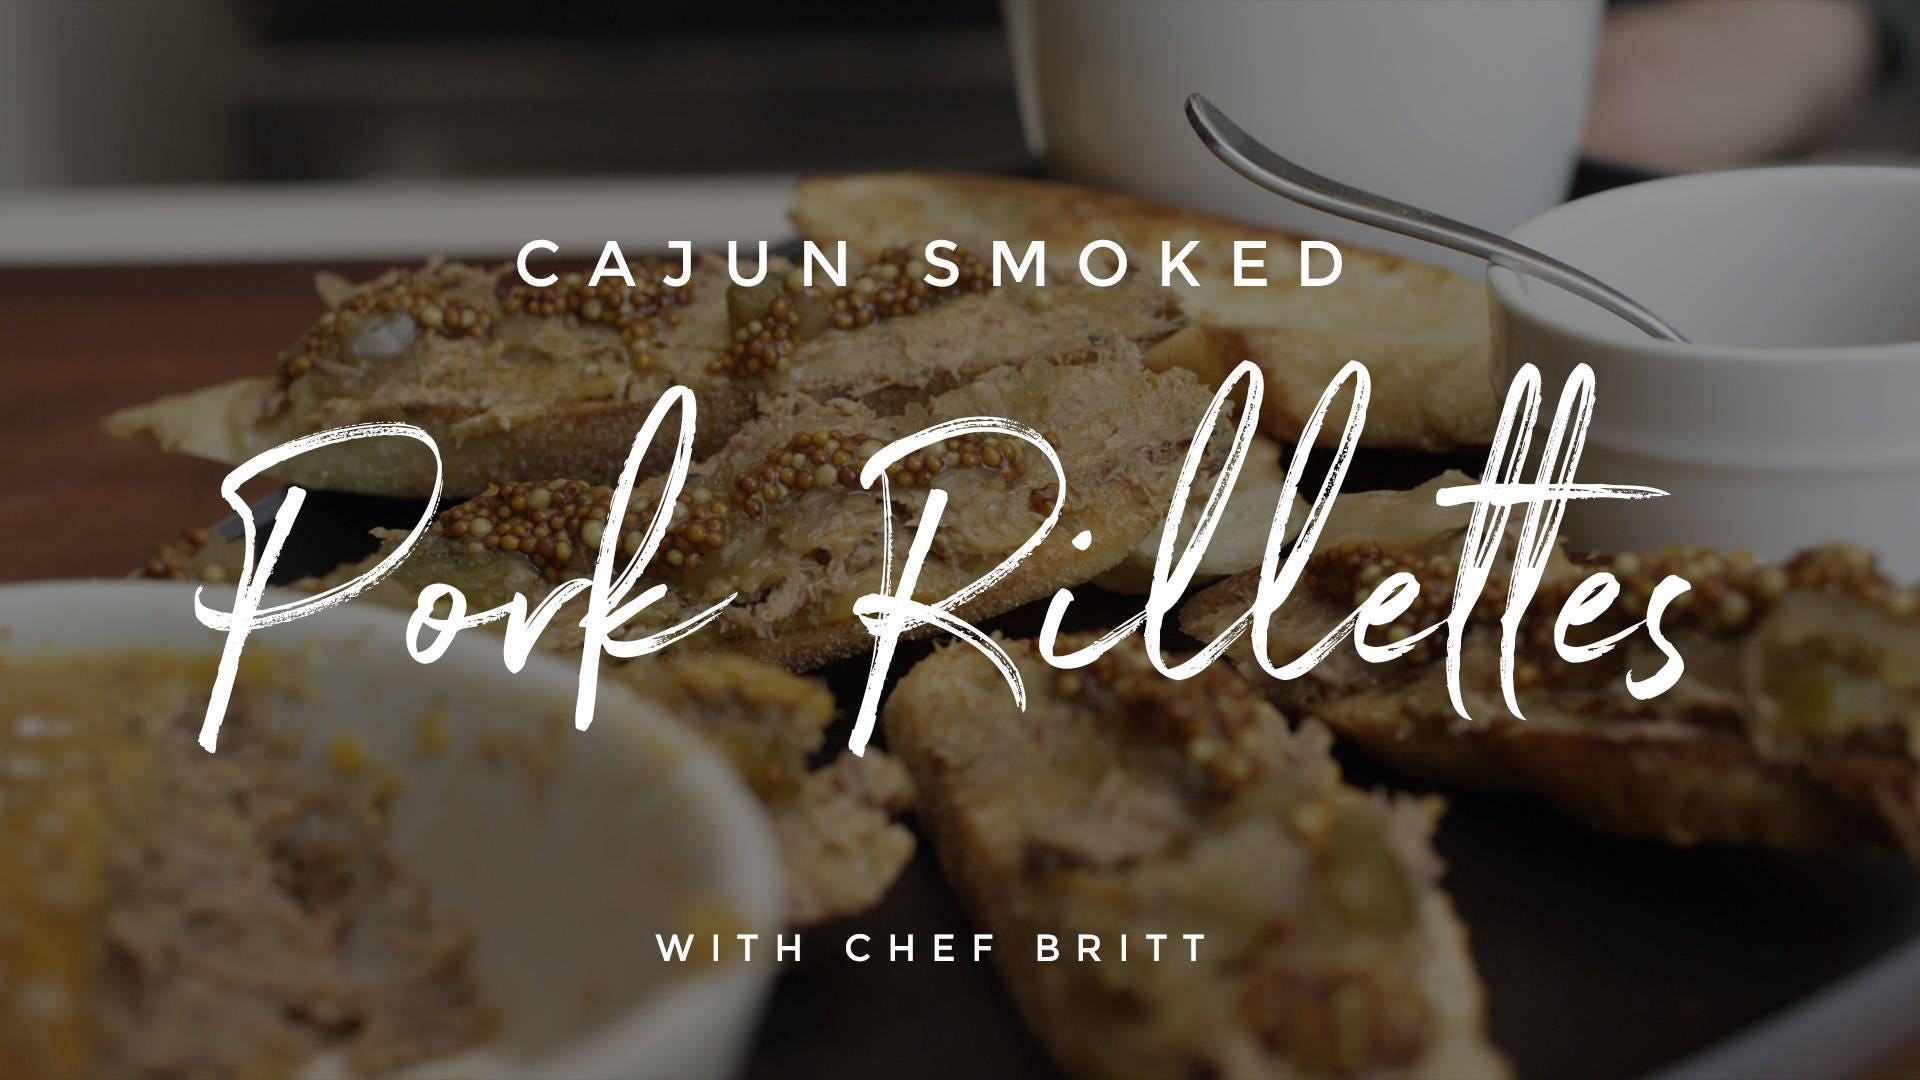 Cajun Smoked Pork Rillettes Recipe